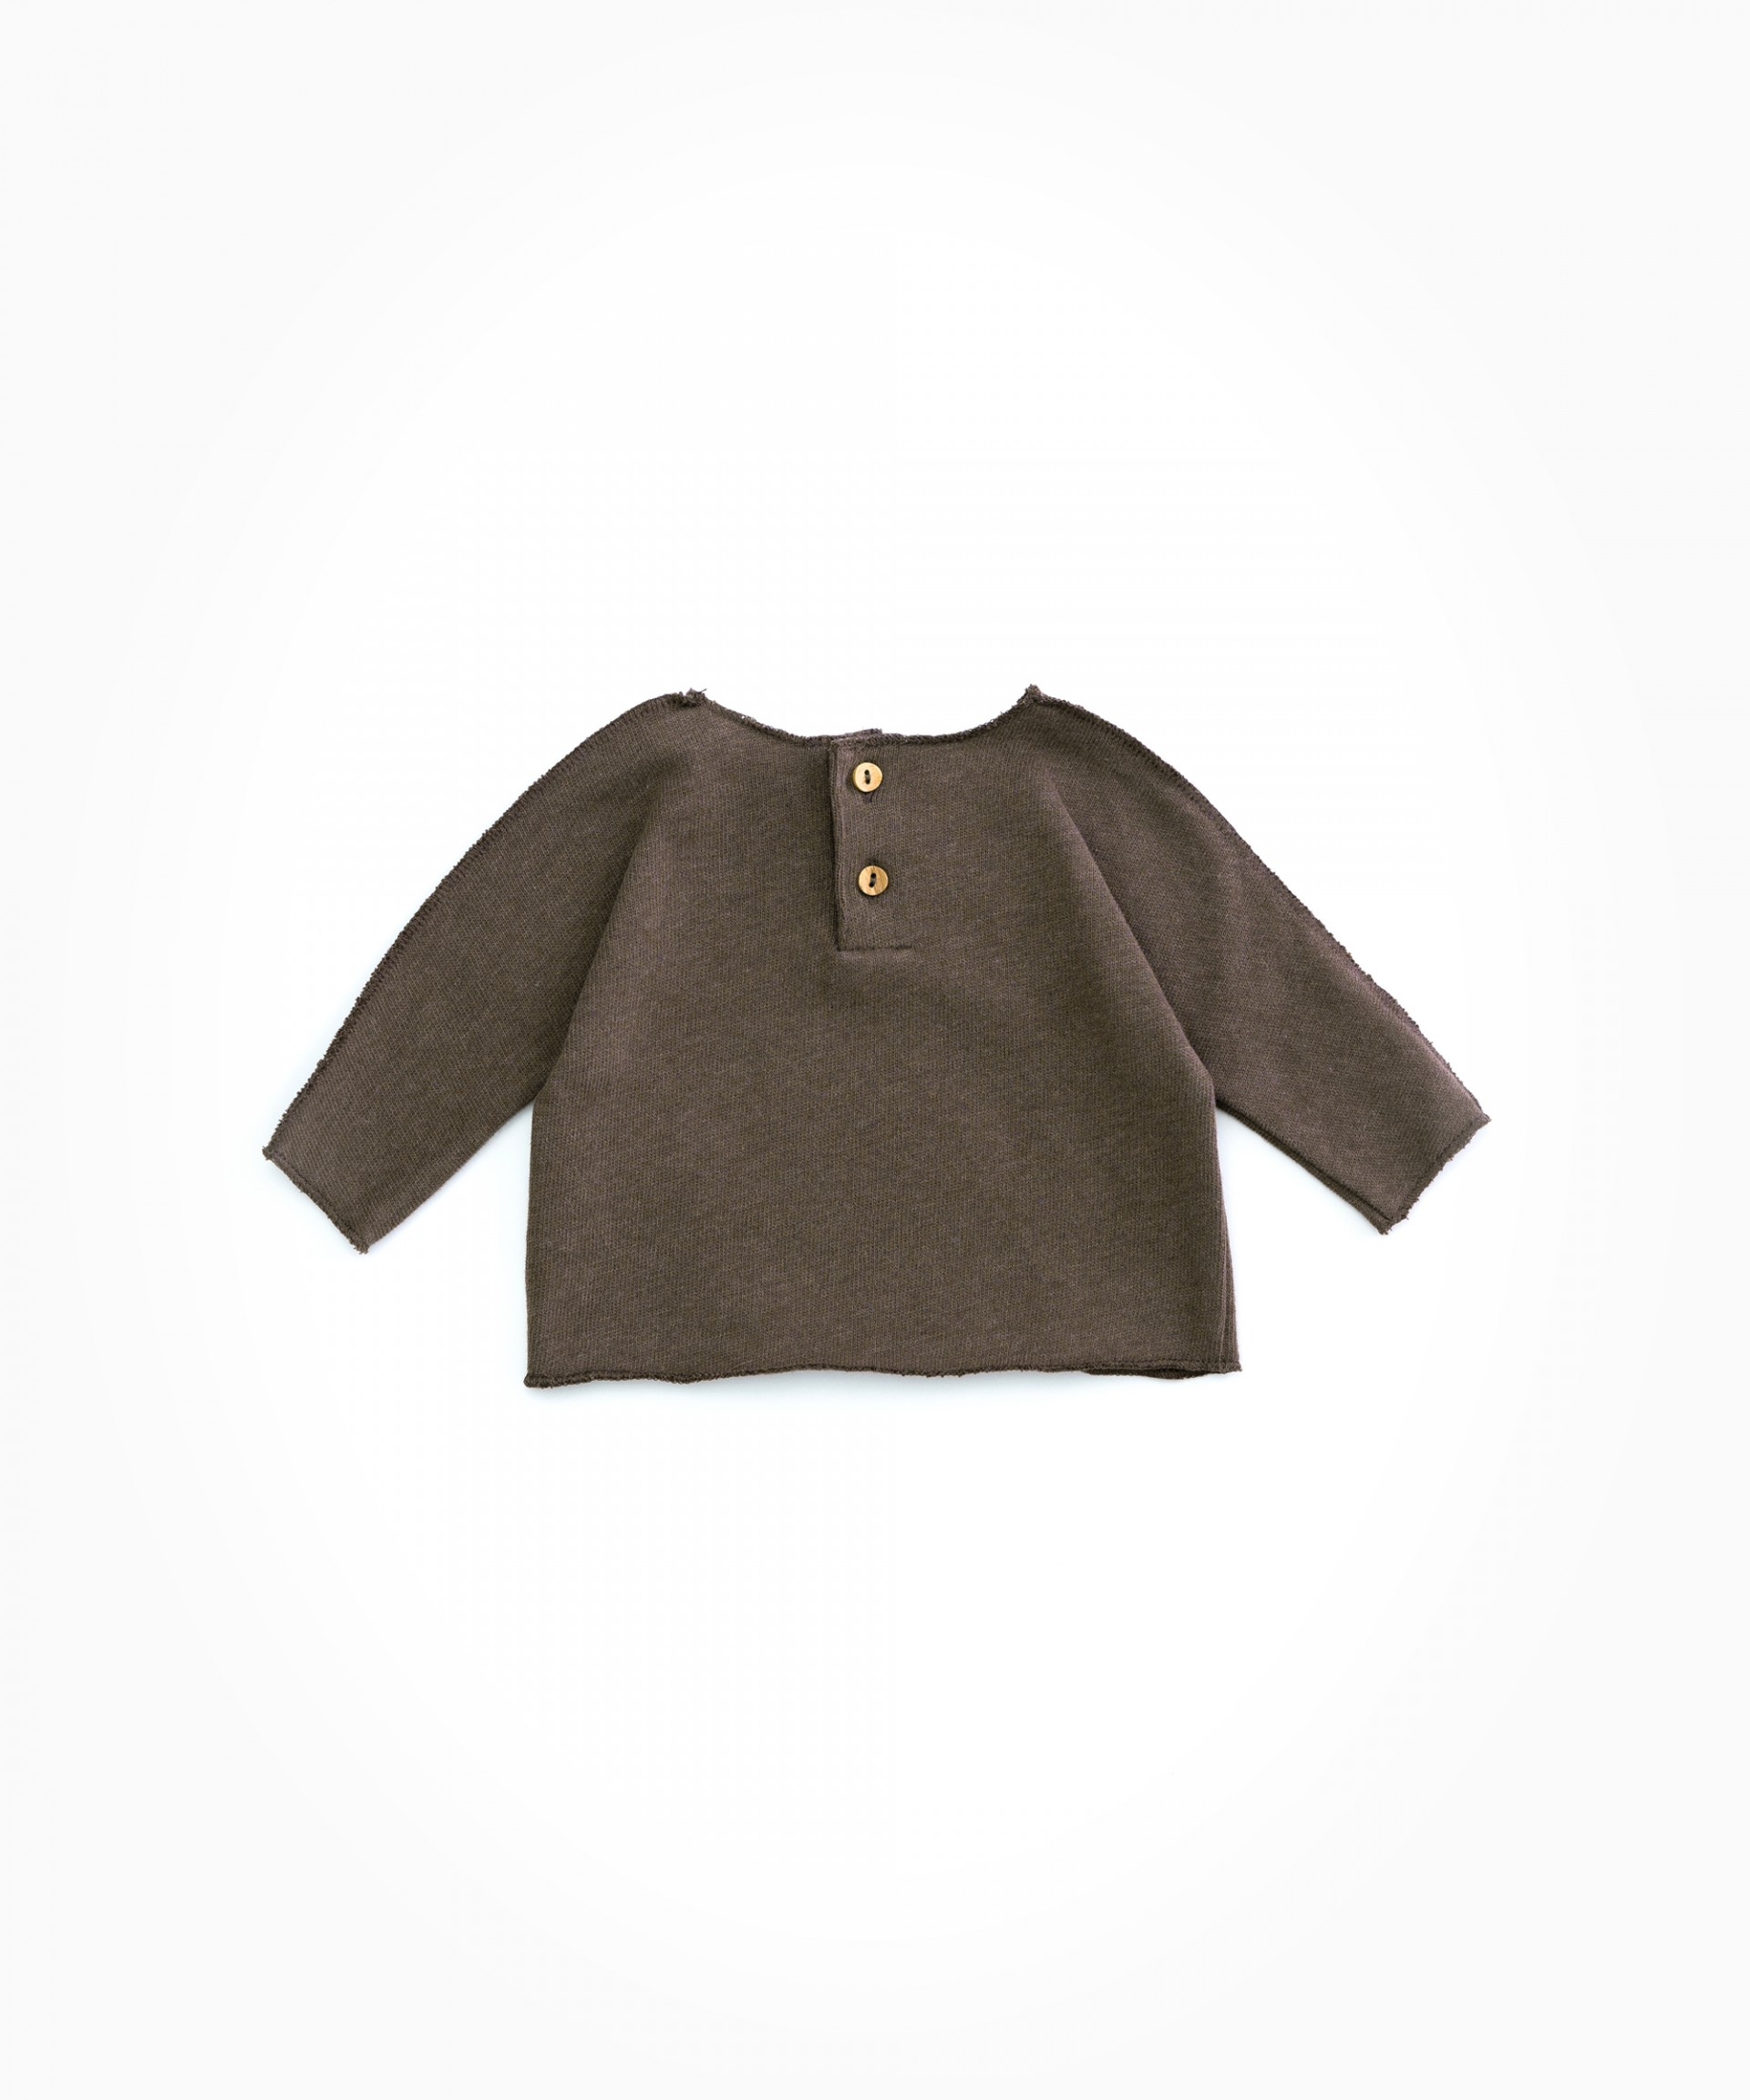 Jersey in organic cotton | Woodwork